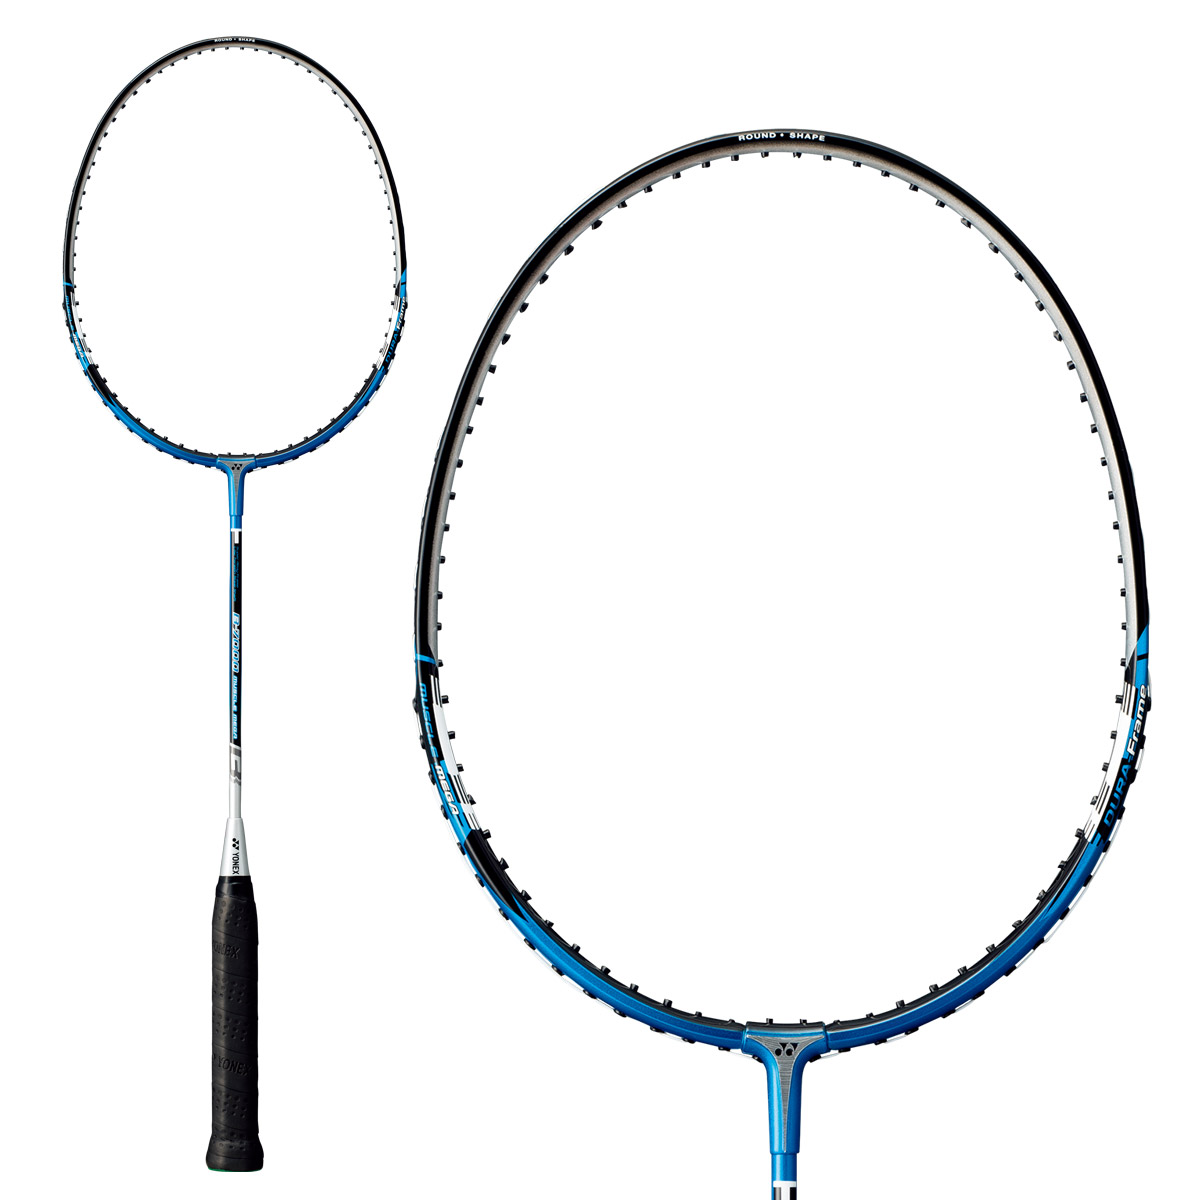 Yonex Basic Mdm Badminton Racket White Blue